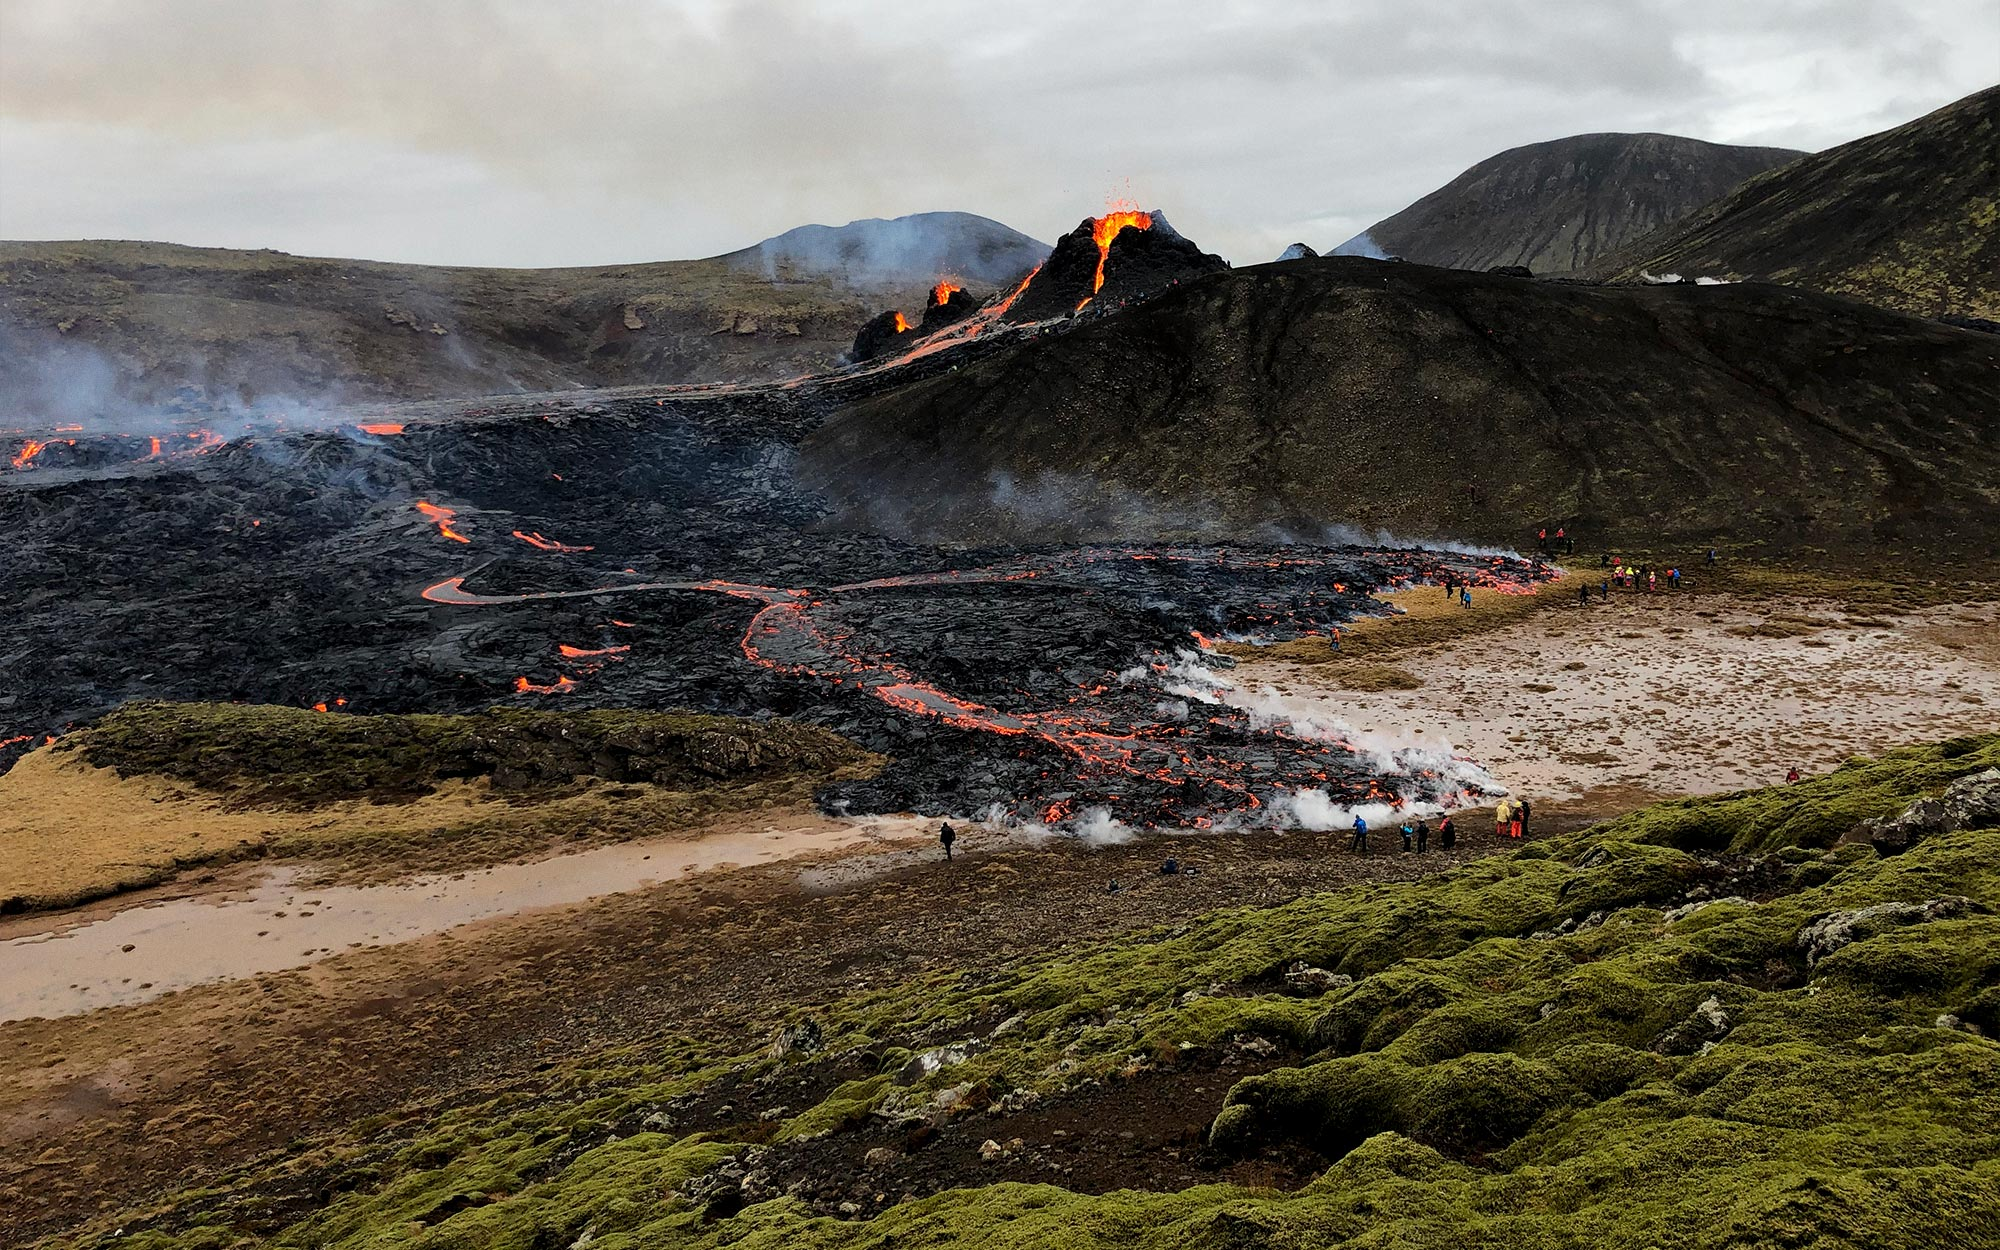 A volcano with orange lava flows coming down into a valley, with about 20 people standing at the base.